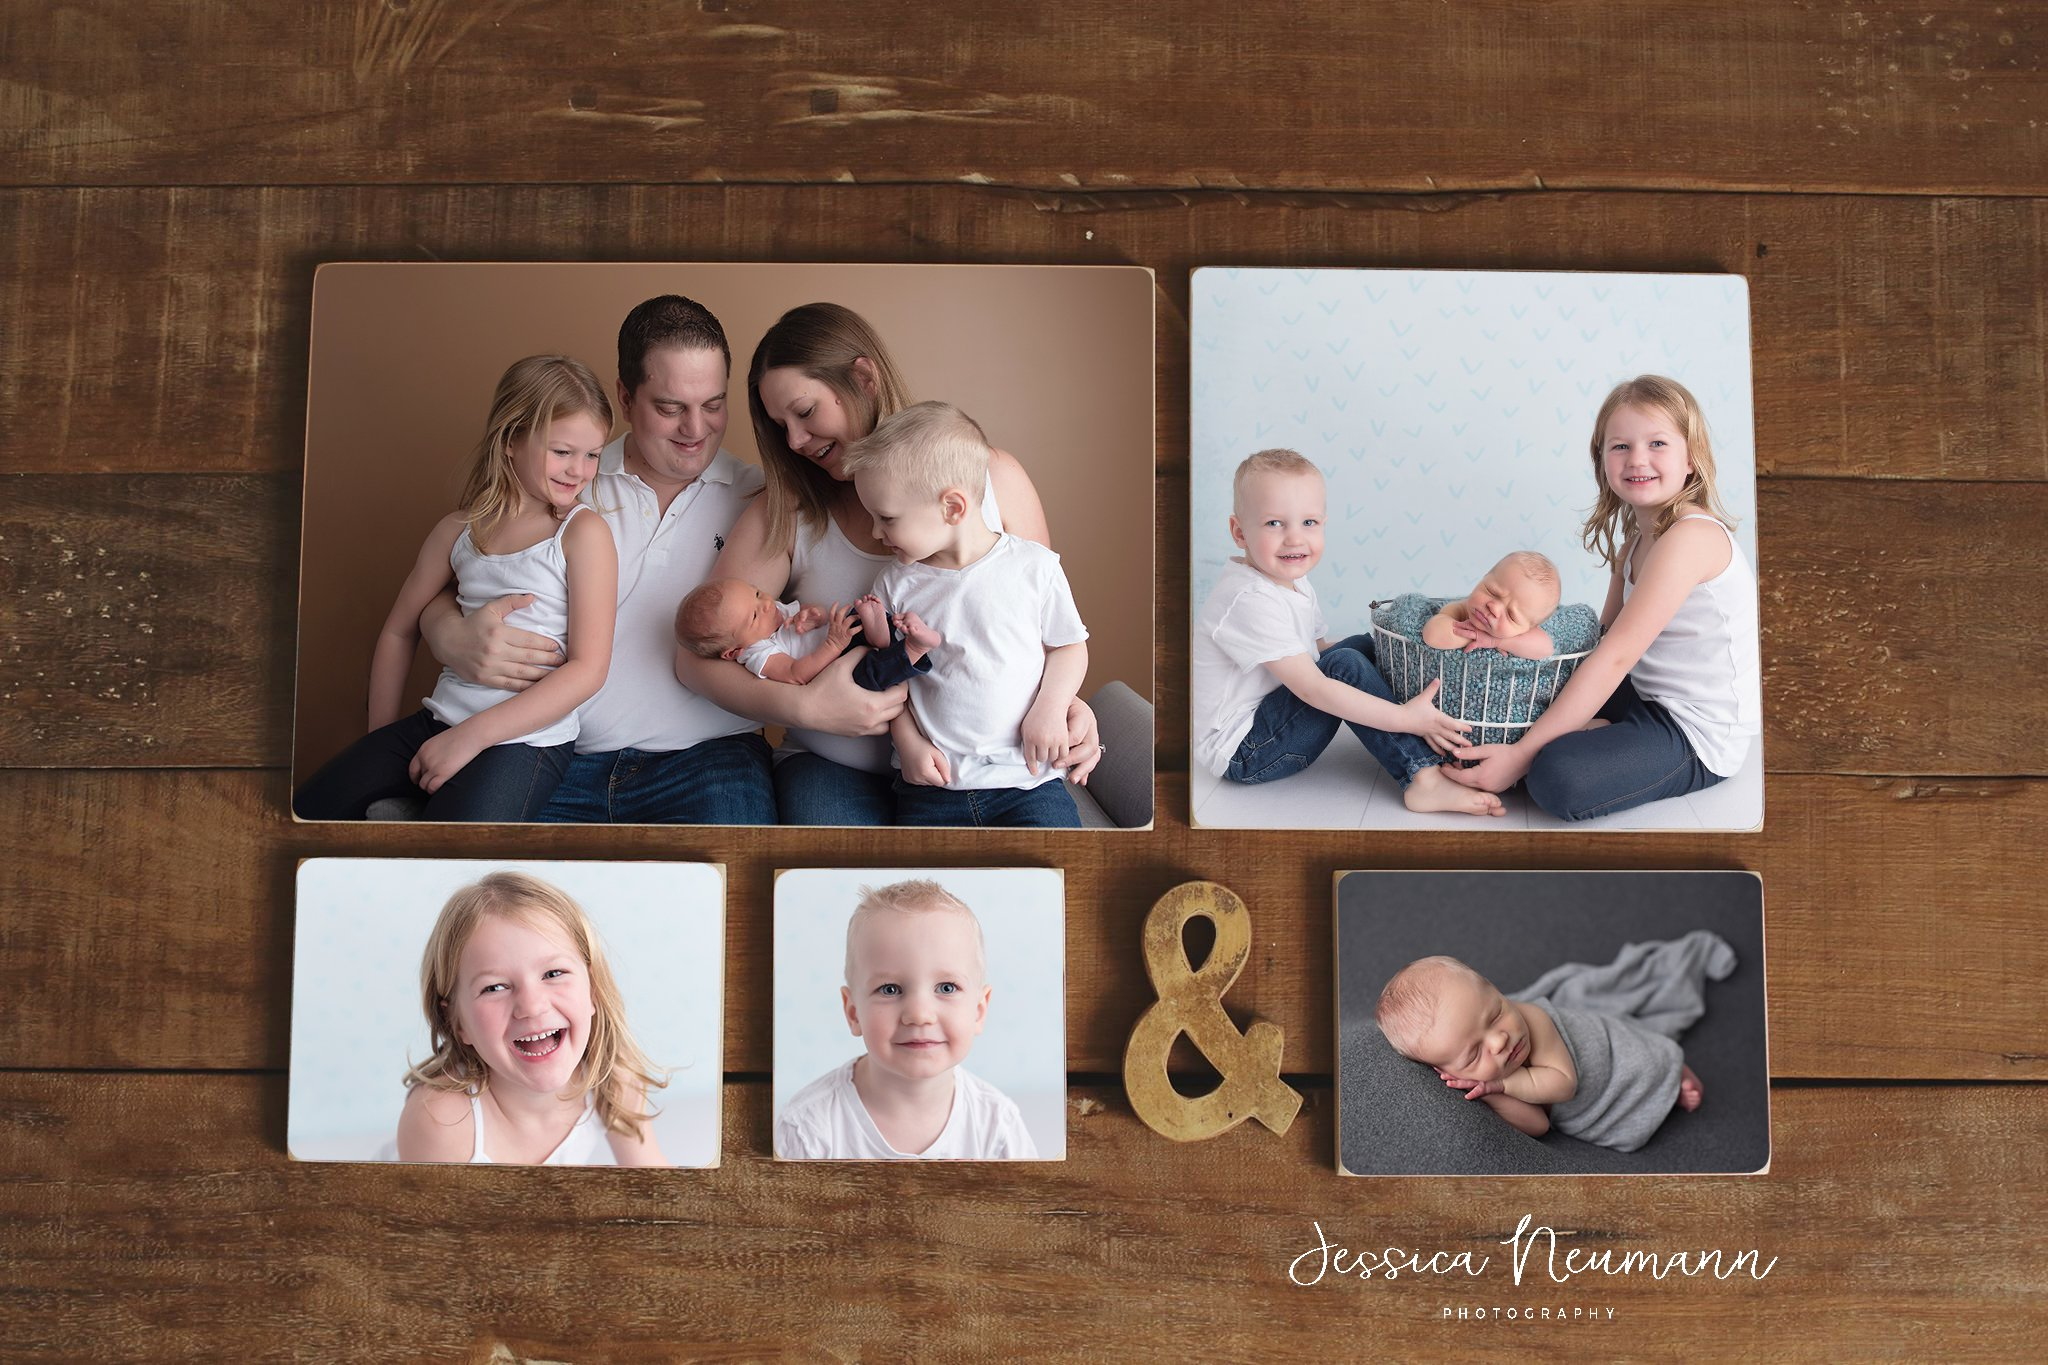 Custom Wood Block Photos in Frederick, MD